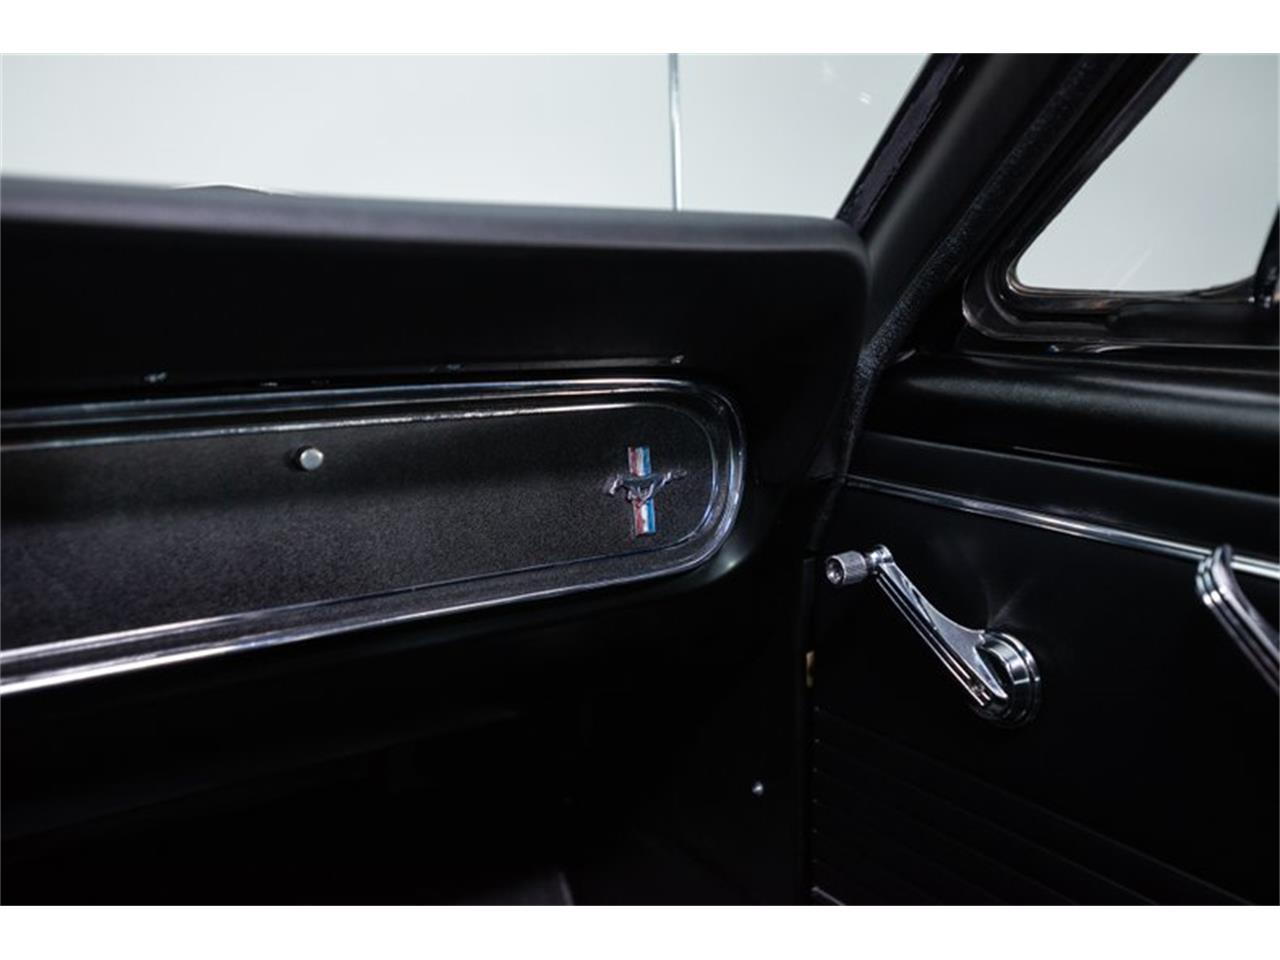 Large Picture of Classic 1966 Ford Mustang located in Charlotte North Carolina - $189,900.00 - Q2WU